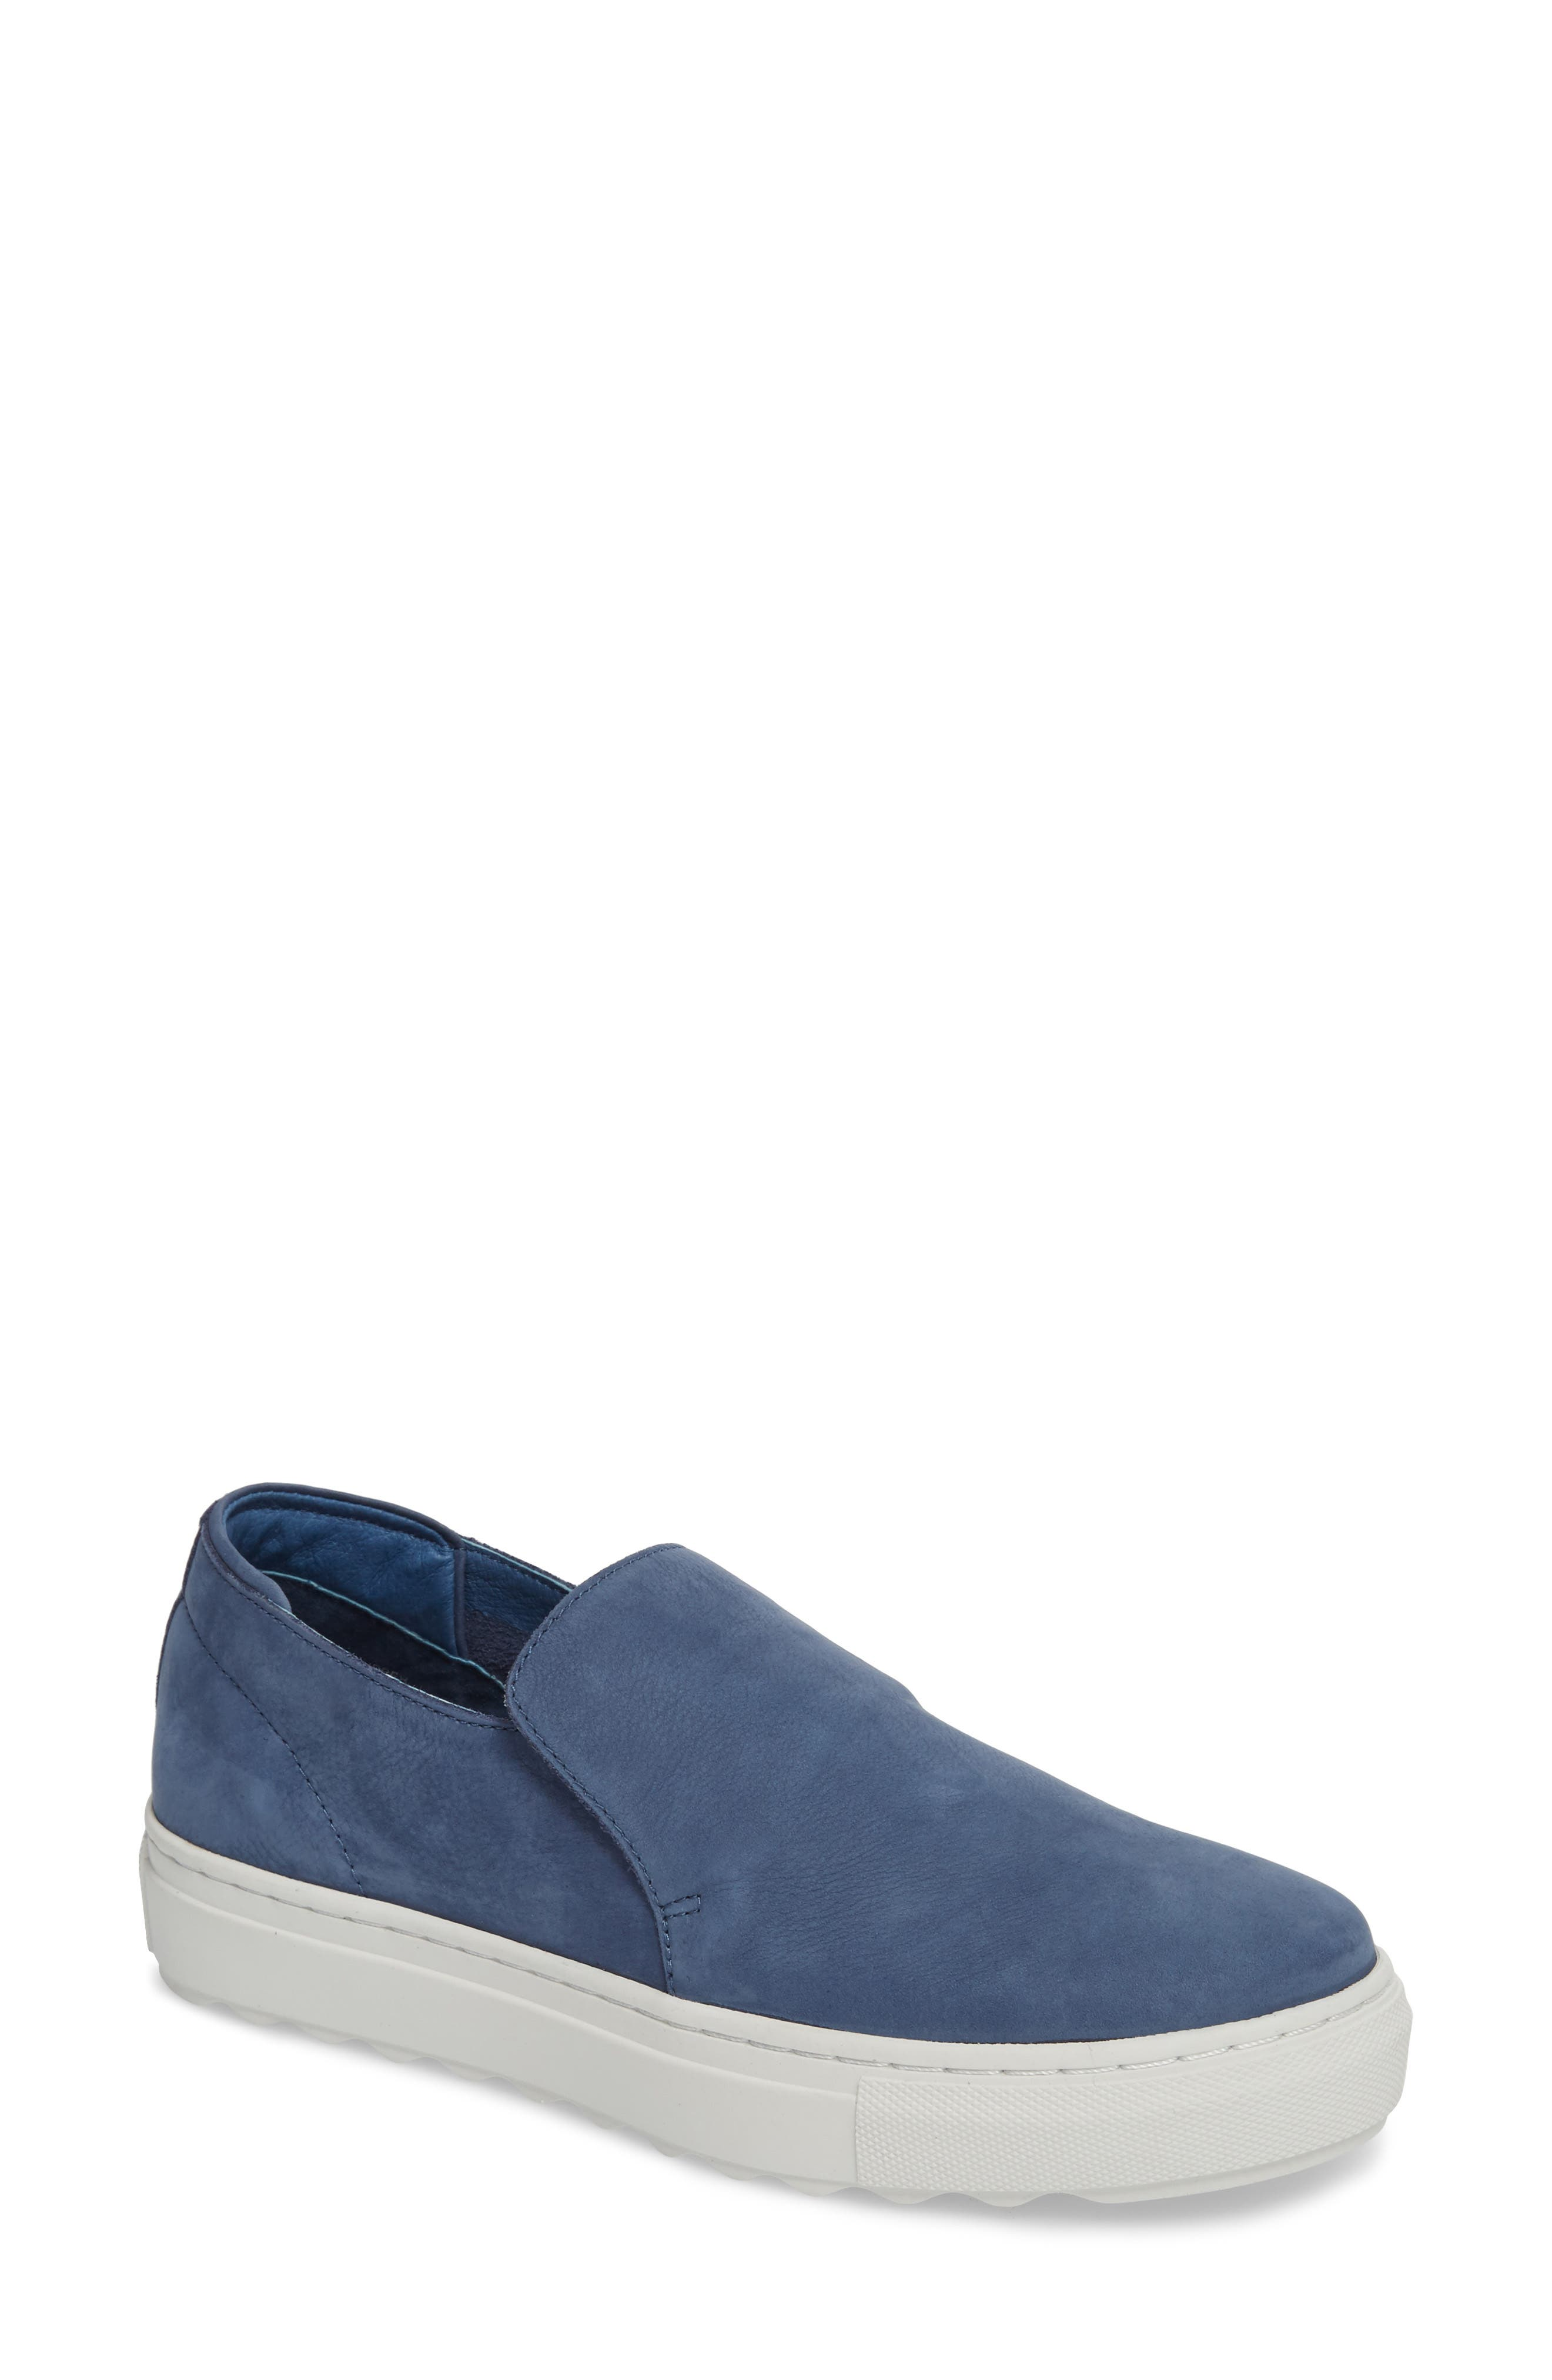 Perrie Platform Slip-On,                         Main,                         color, Denim Suede